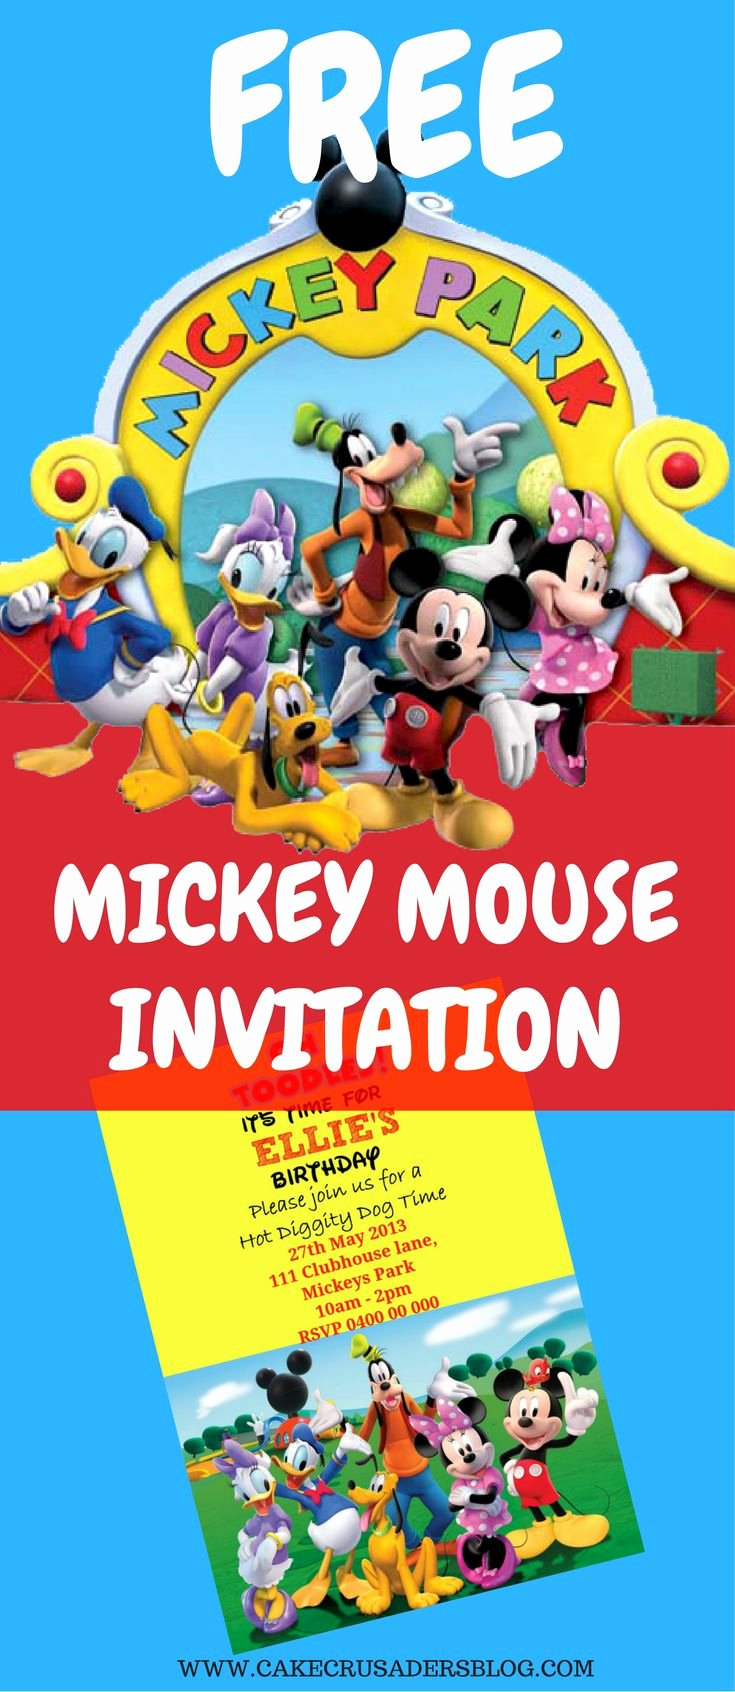 Mickey Mouse Invitation Maker Luxury Best 20 Mickey Mouse Invitation Ideas On Pinterest